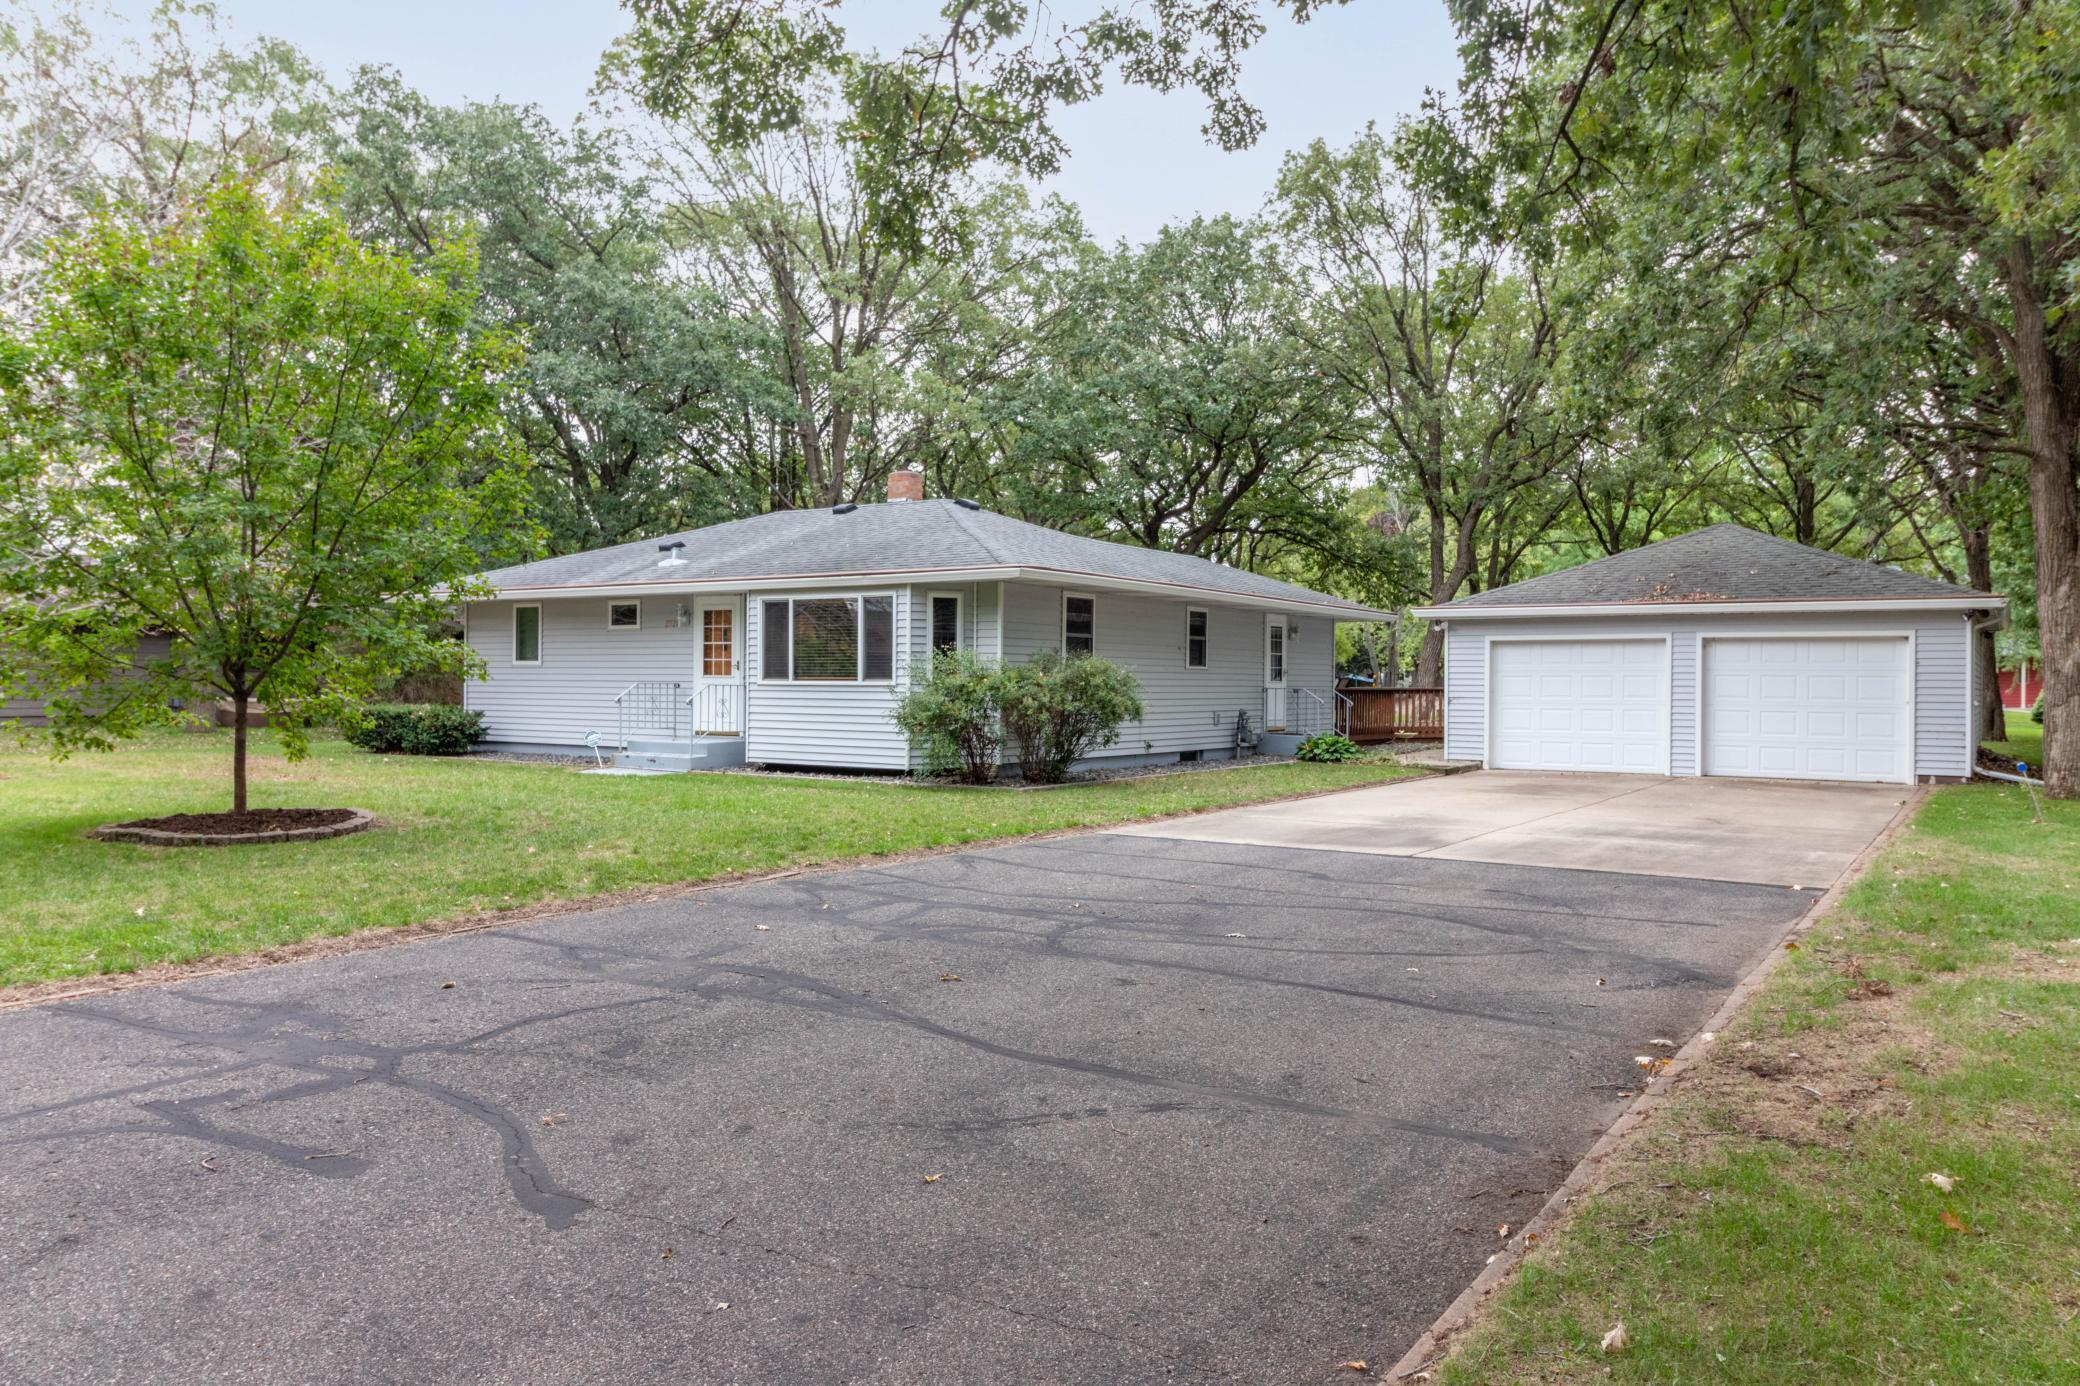 3 same floor bedrooms on over a half an acre treed lot and walking distance to Whitney Park.  This is a great neighborhood with easy access to area amenities.   Home has newer windows, steel siding, added attic insulation, new carpet and fresh paint.  The garage is over sized with plenty of room to park.   The lower level has the three quarter bath with heated floor, laundry area and mechanicals.  There is a well that is hooked up to the sprinkler system that the seller has not used.   Definitely room to build equity and grow in this home.